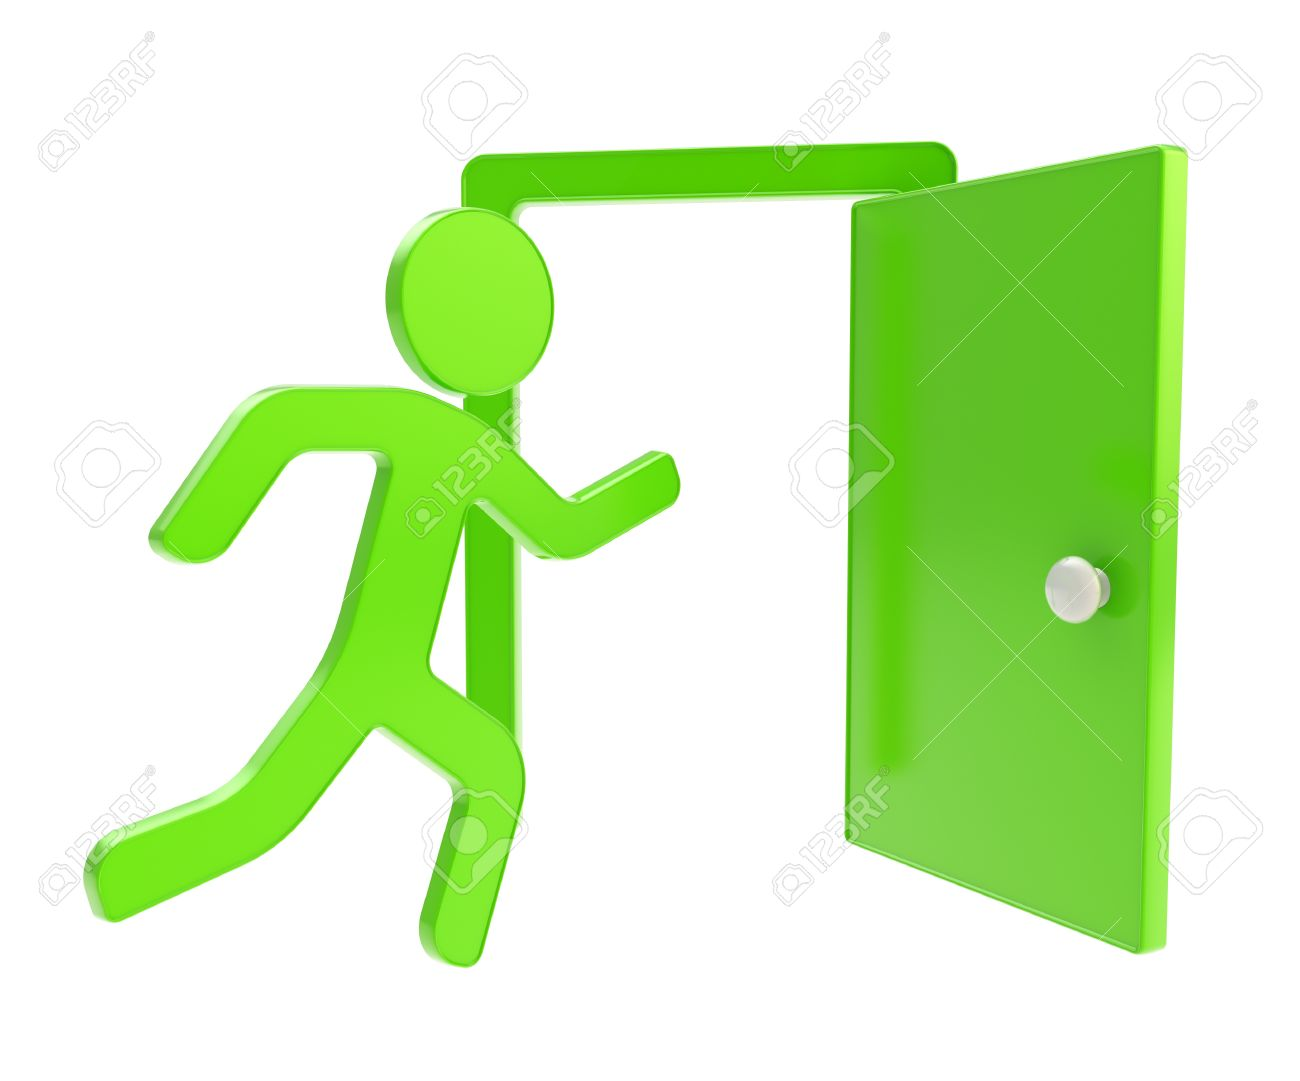 Emergency stop icon clipart emergency off - Emergency Exit Sign Icon Quit Emergency Exit Green Icon Glossy Dimensional Emblem Isolated On